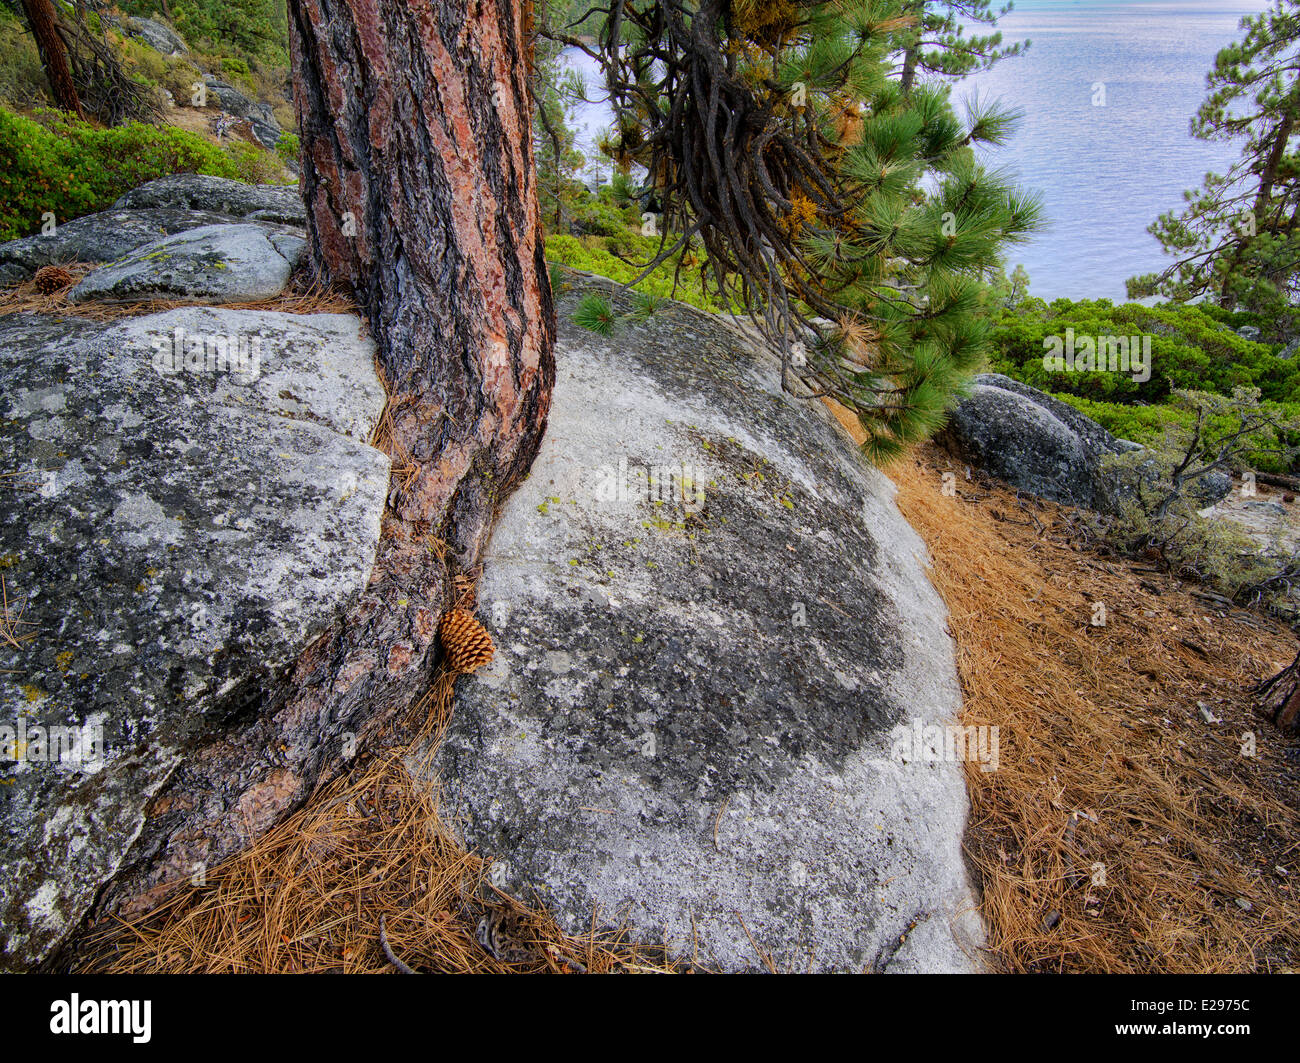 Ponderosa Pine tree struggling to grow in granite rock crack and Lake Tahoe. Lake Tahoe, California/Nevada - Stock Image